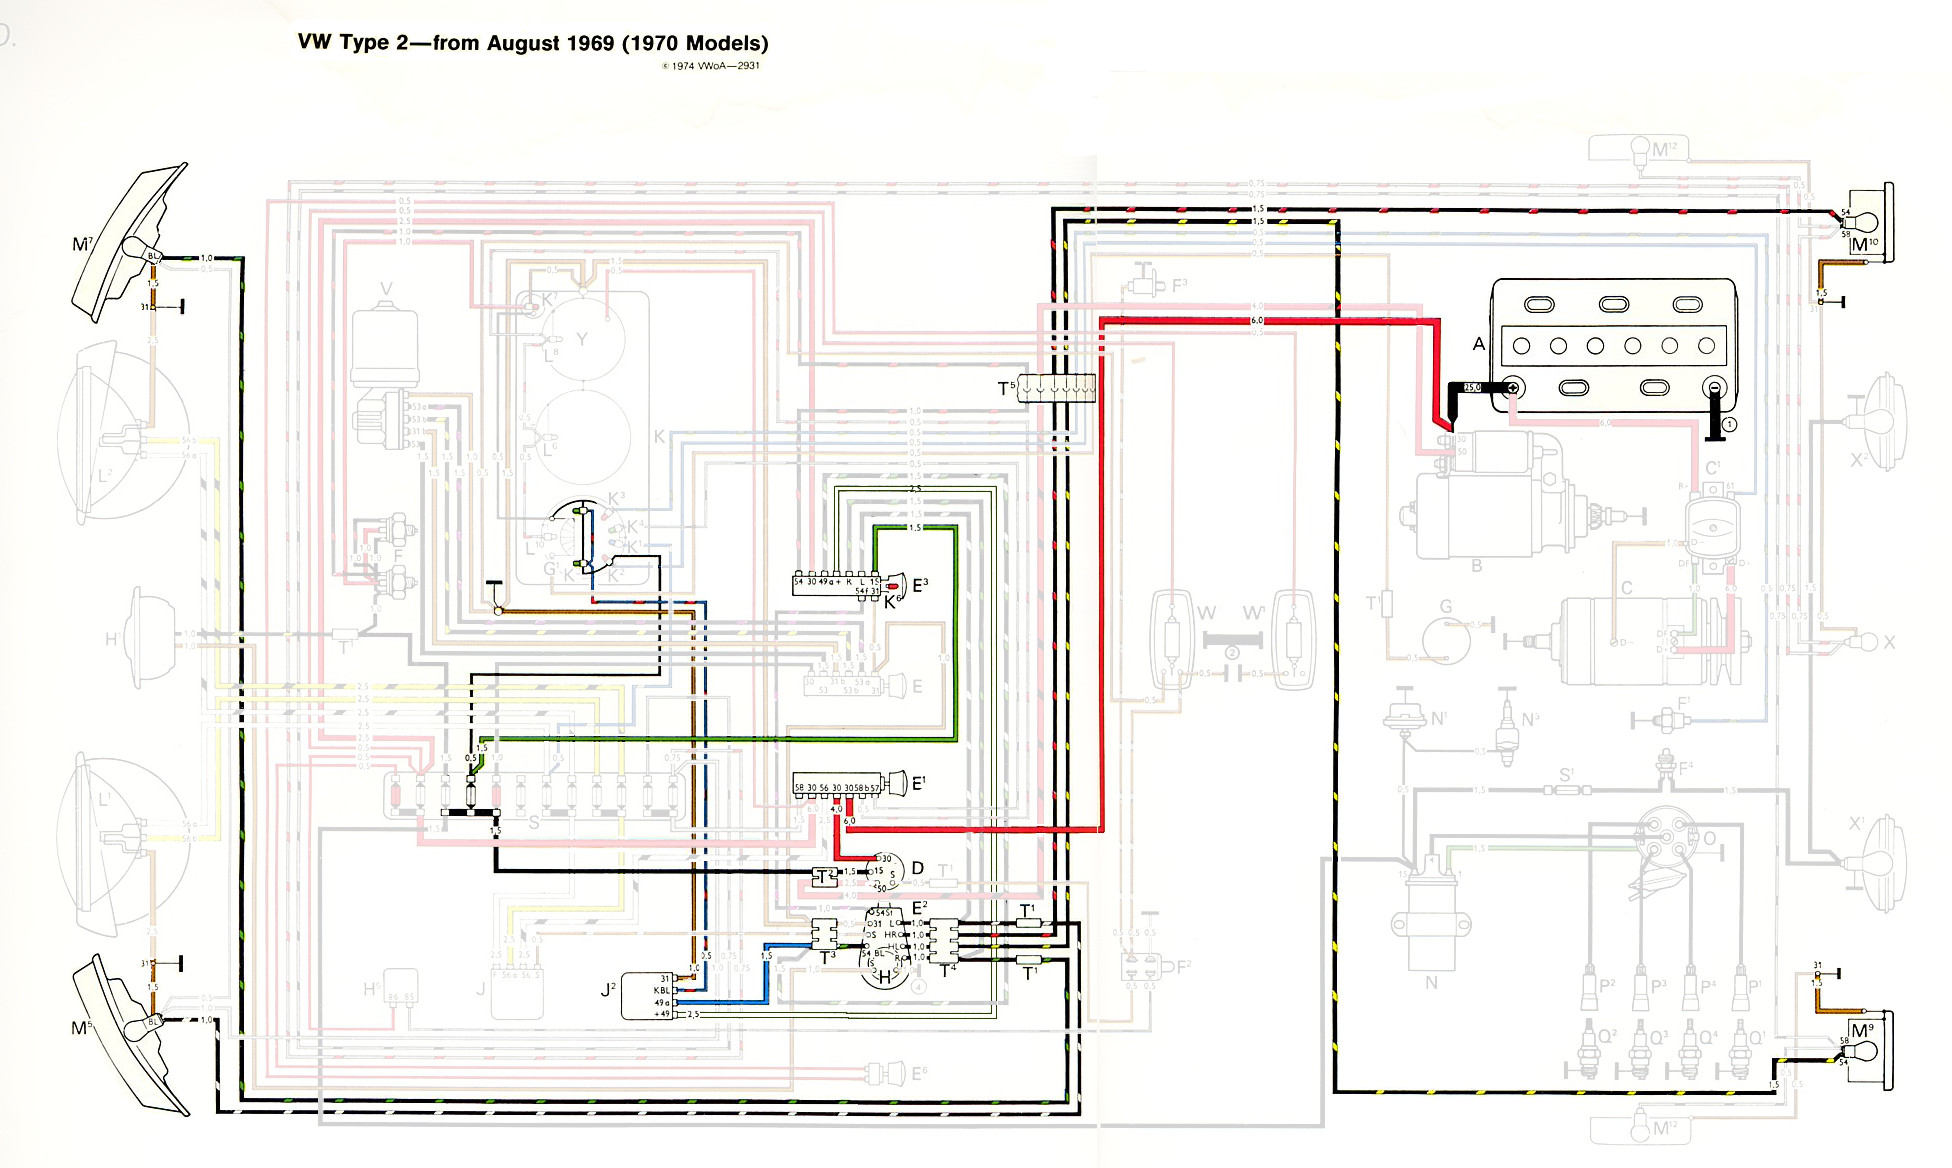 hight resolution of 74 vw bus wiring diagram relays experts of wiring diagram u2022 rh evilcloud co uk 73